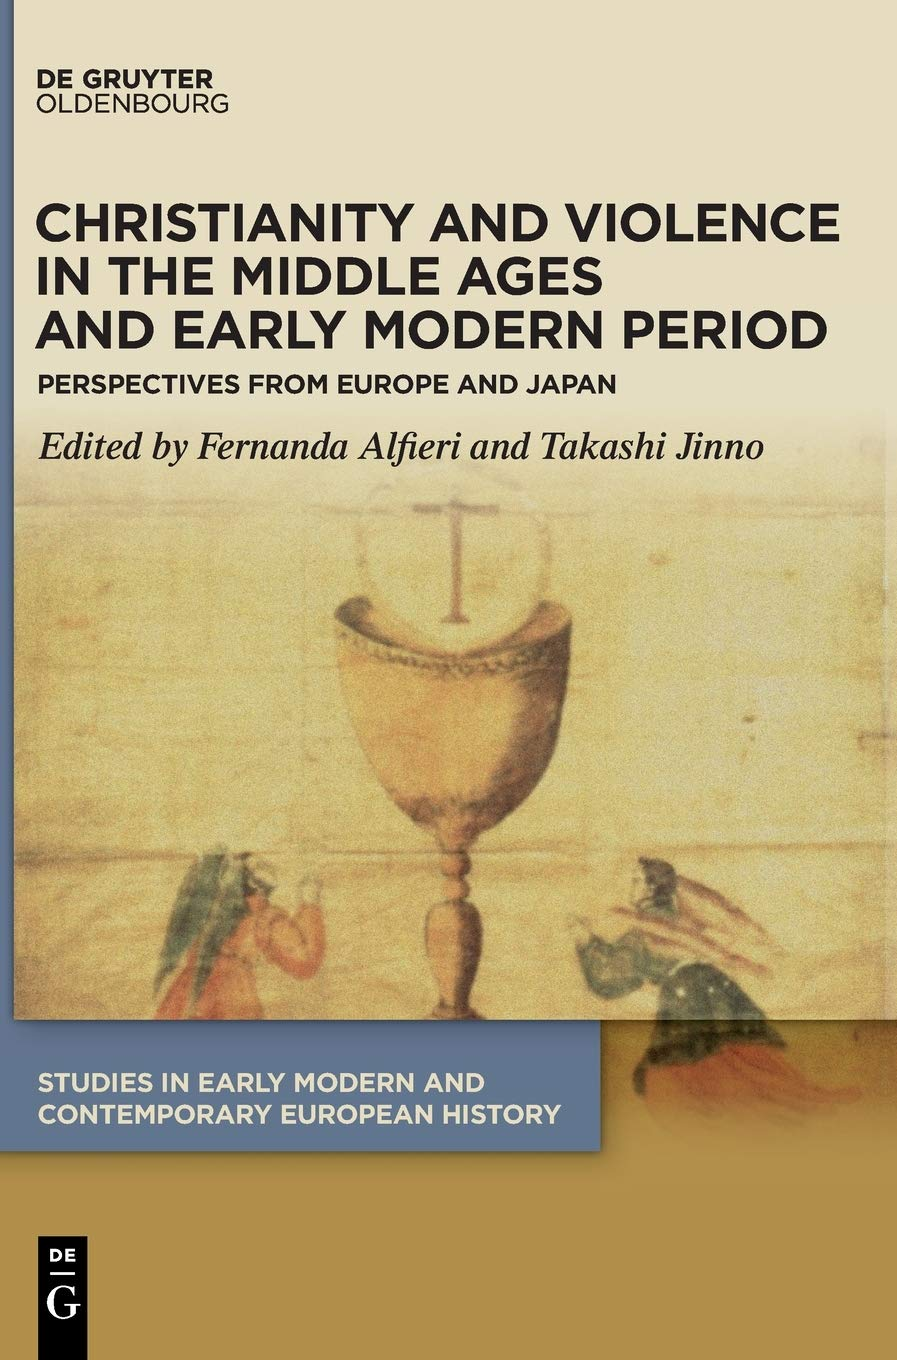 Christianity and Violence in the Middle Ages and Early Modern Period. Perspectives from Europe and Japan